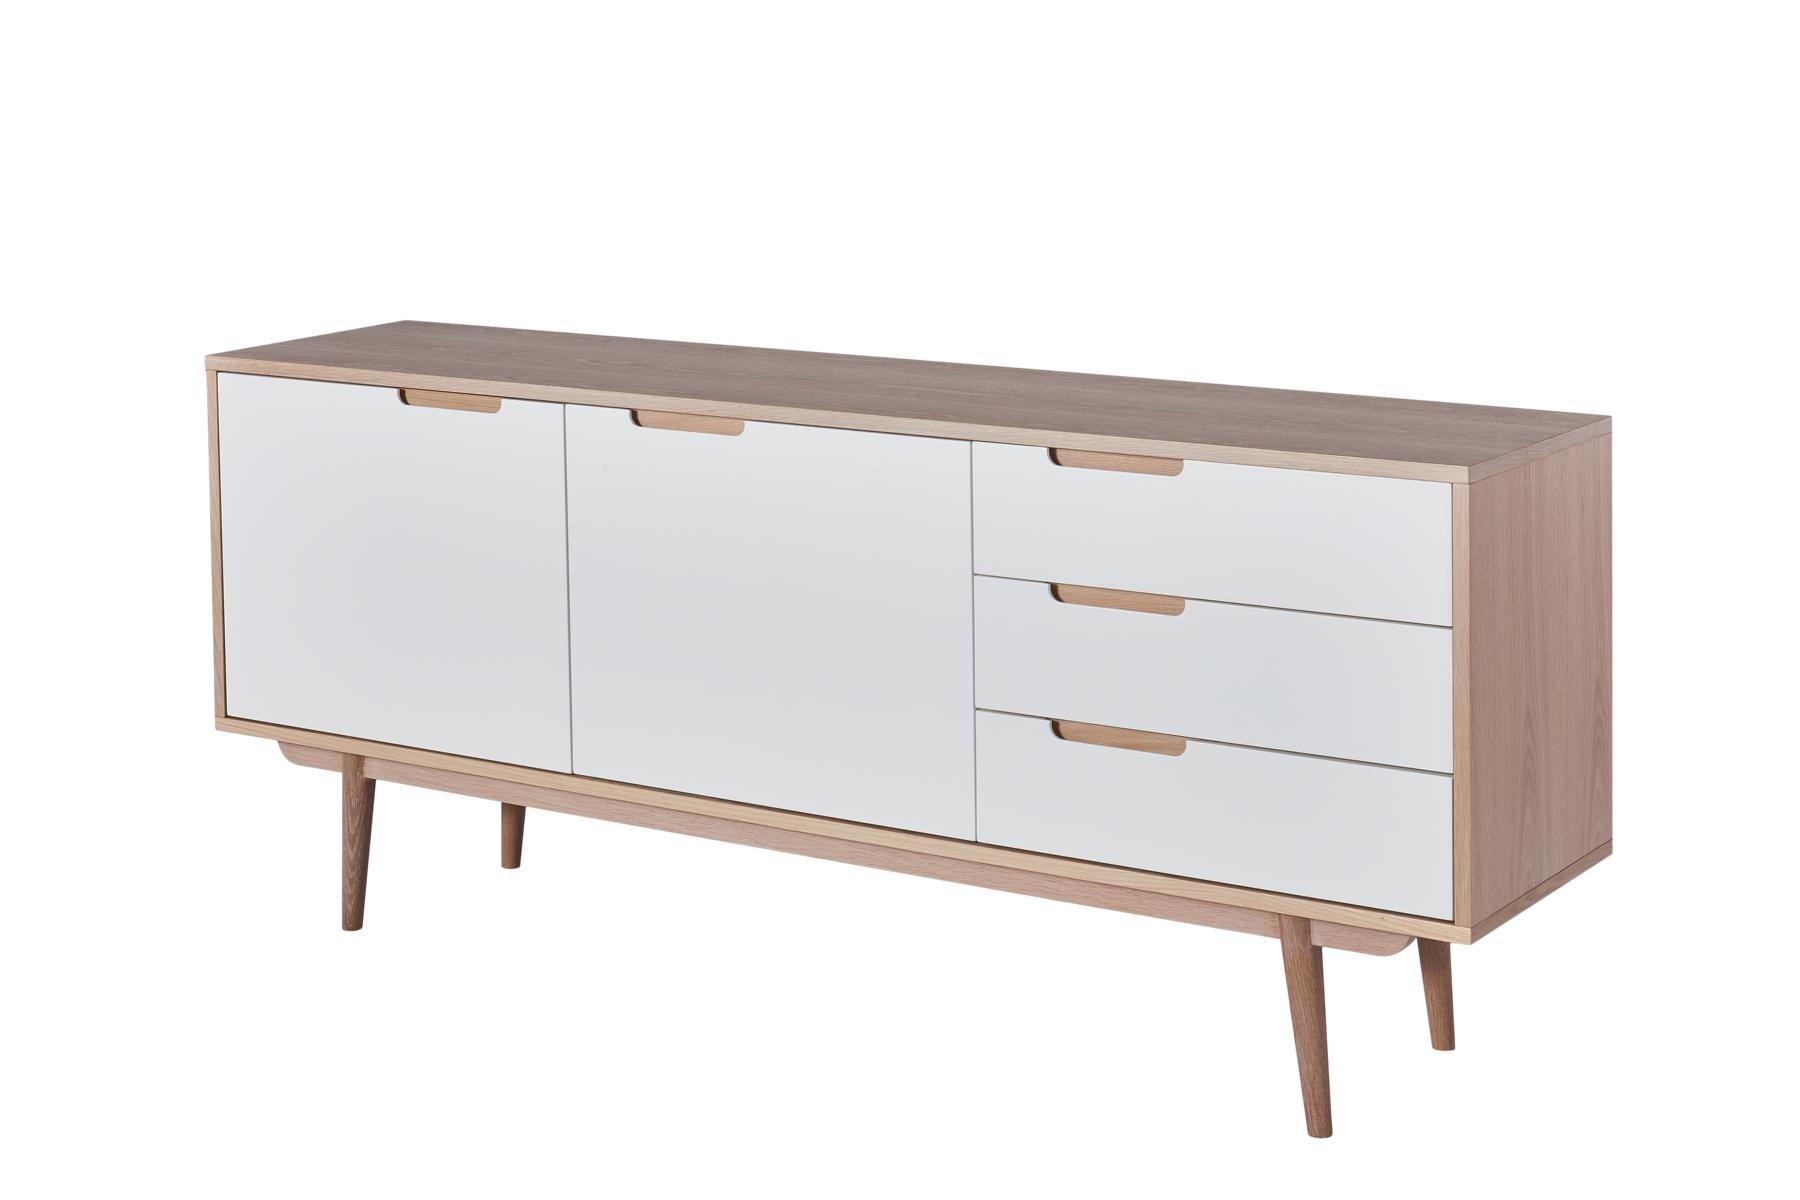 Kommode Skandinavisch Sideboards | Kommoden & Sideboards | Möbel | Cagusto - My